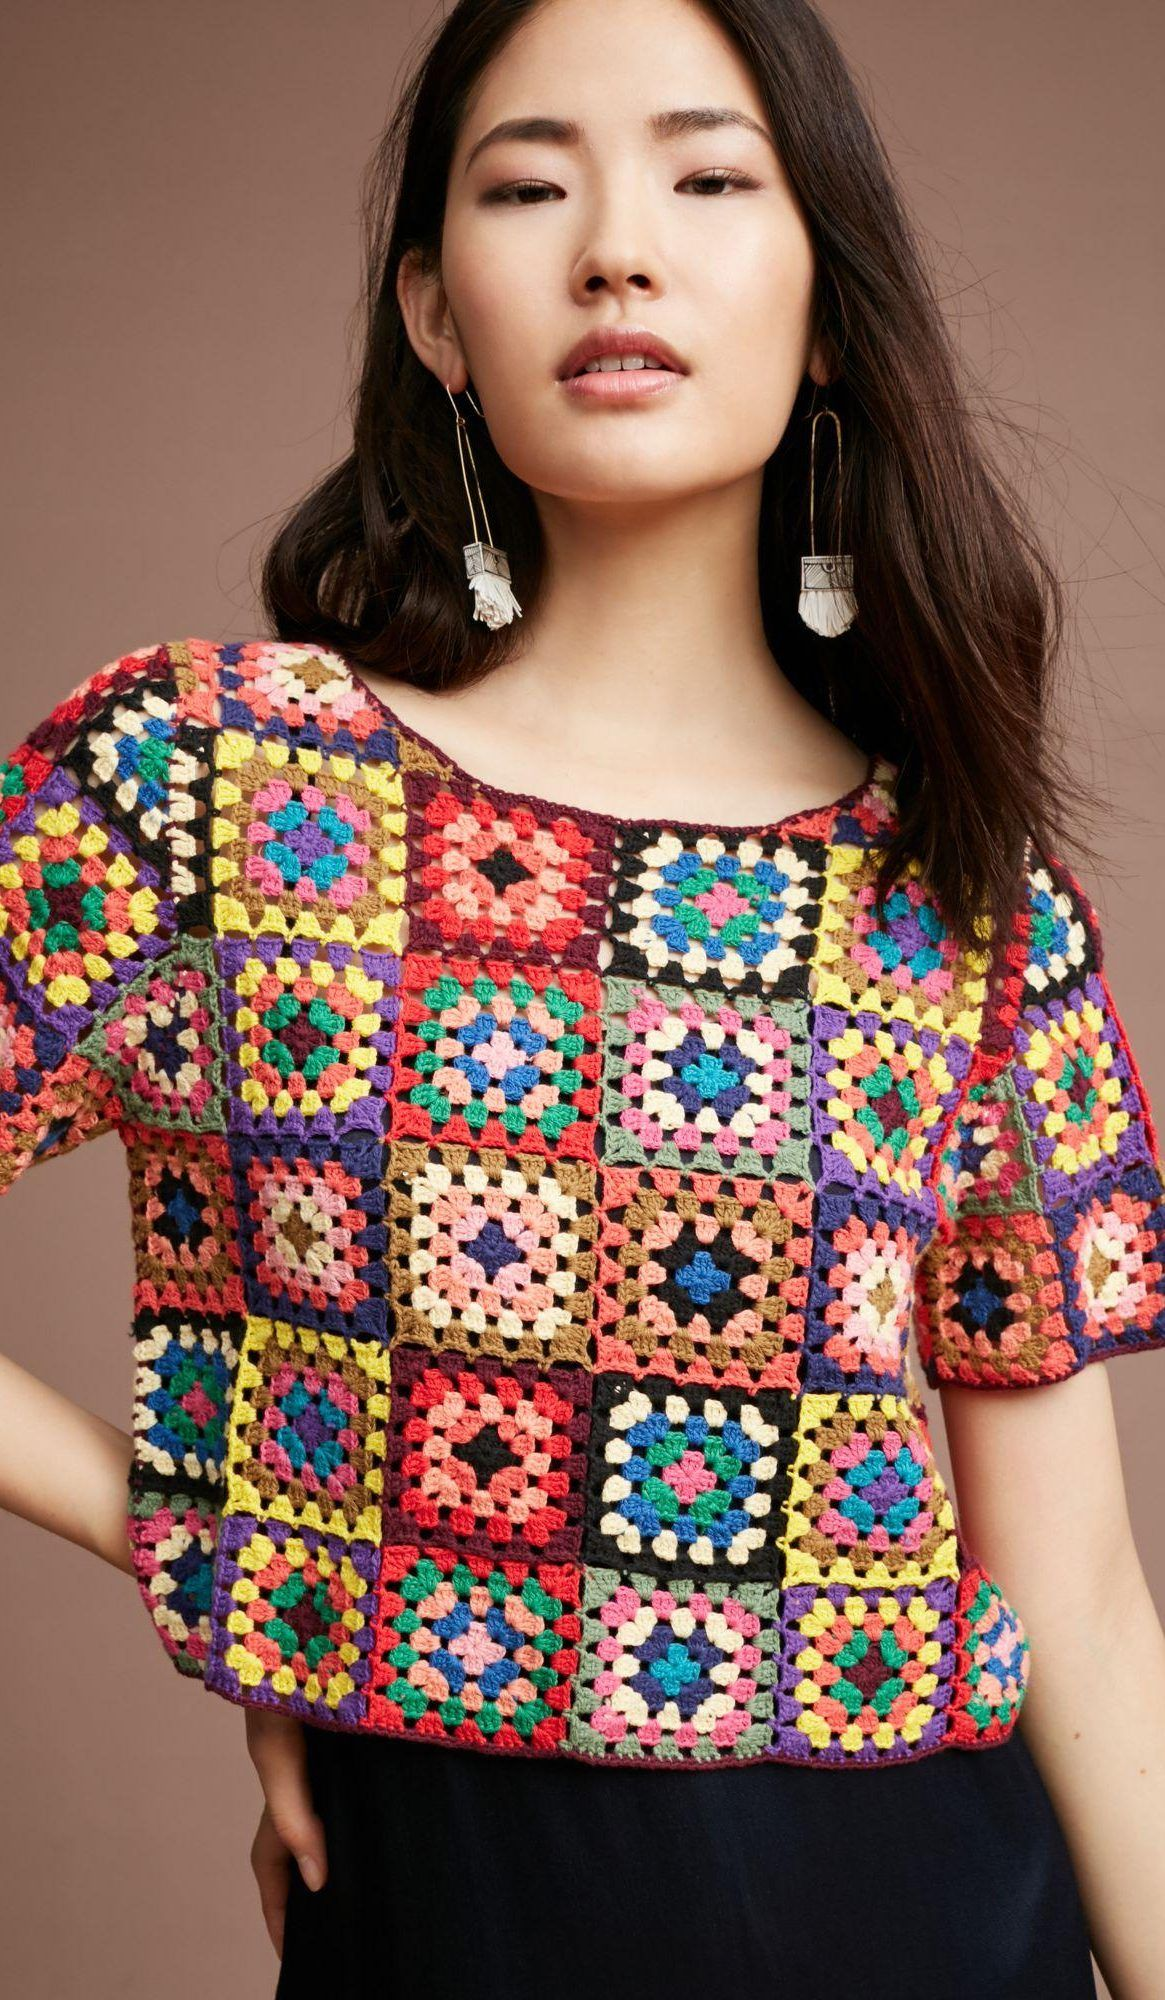 Wonderful and Beauty Crochet Top Pattern Ideas for Summer – Page 33 of 60